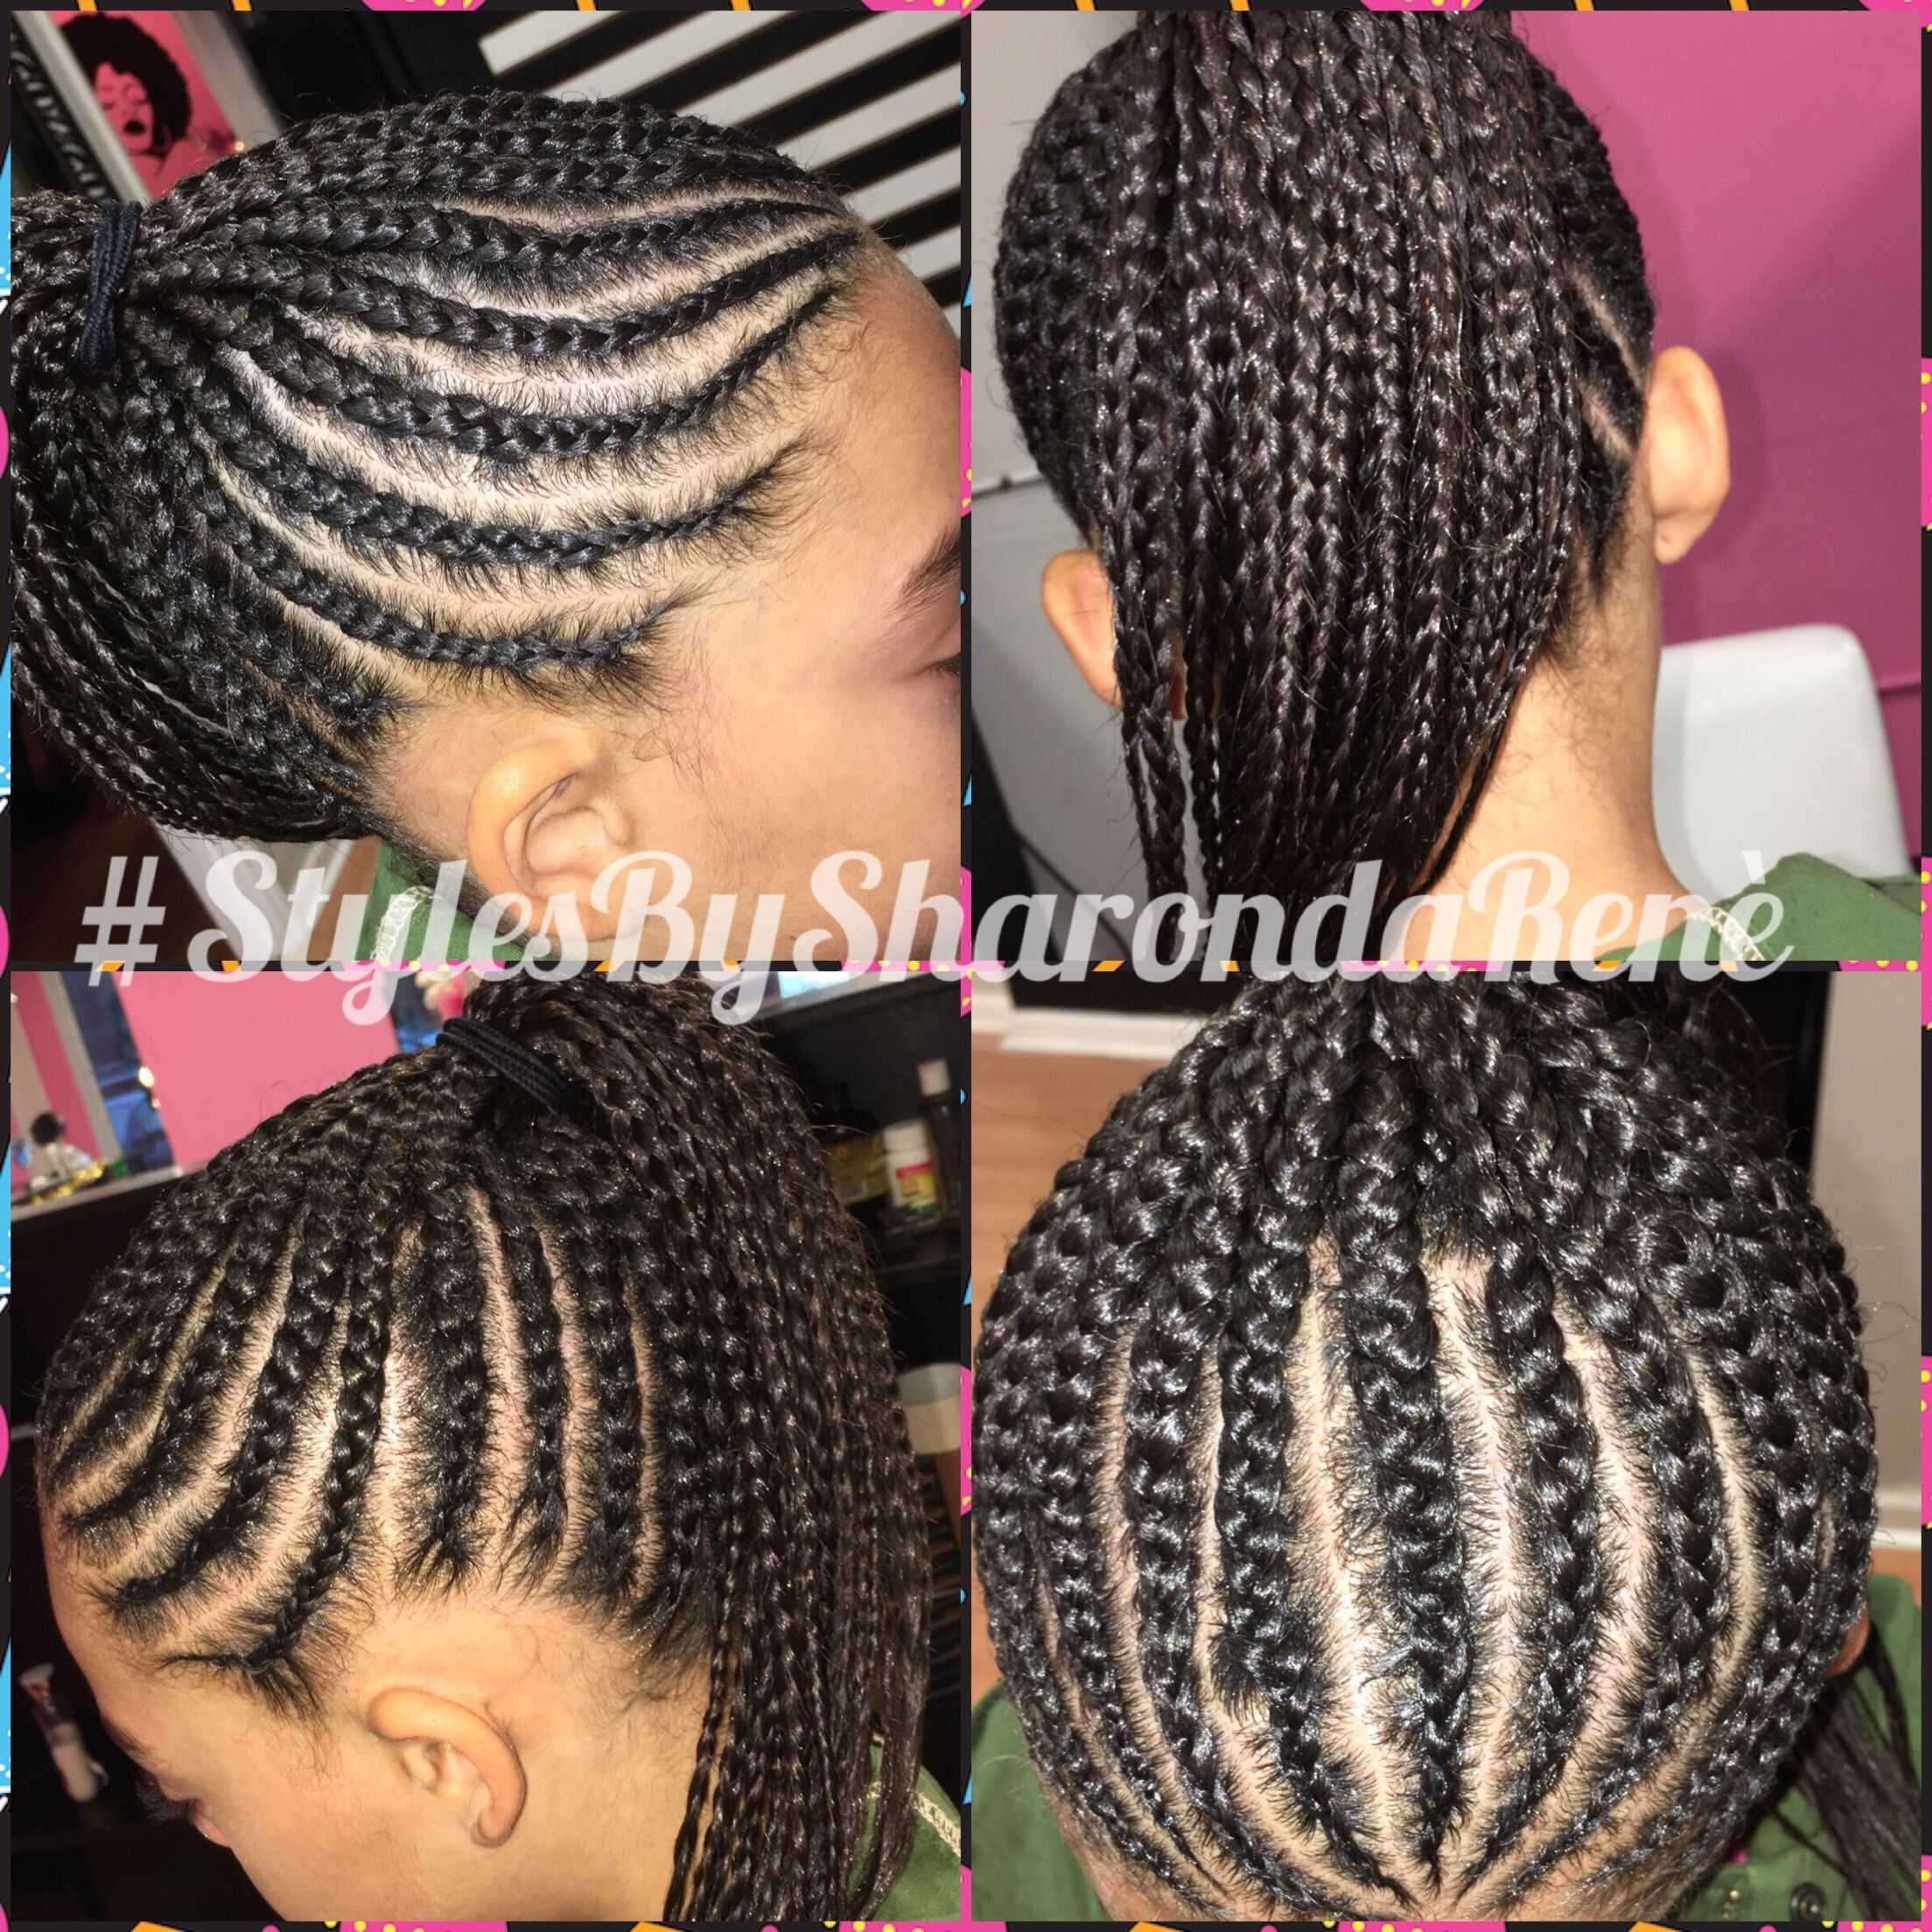 Braided Ponytail Basic Cornrows No Extensions Added All